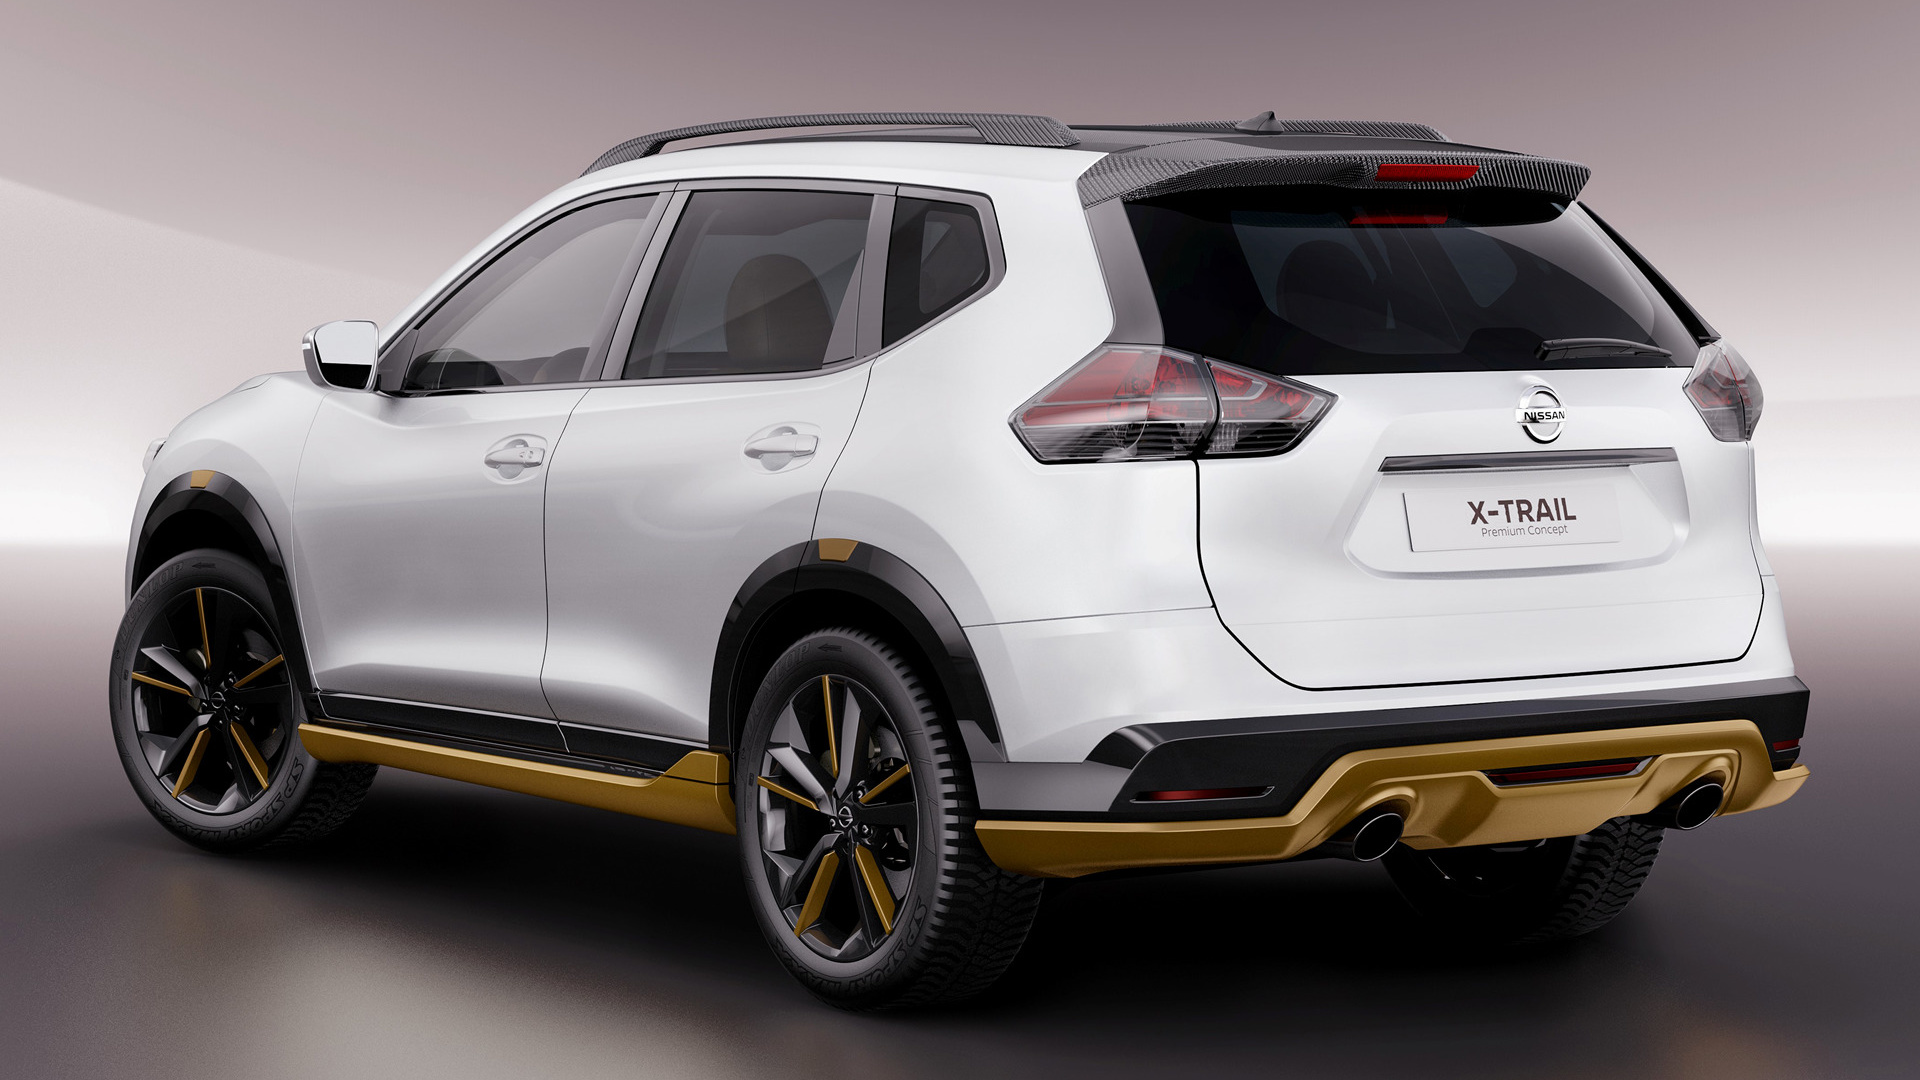 2016 Nissan X-Trail Premium Concept - Wallpapers and HD ...